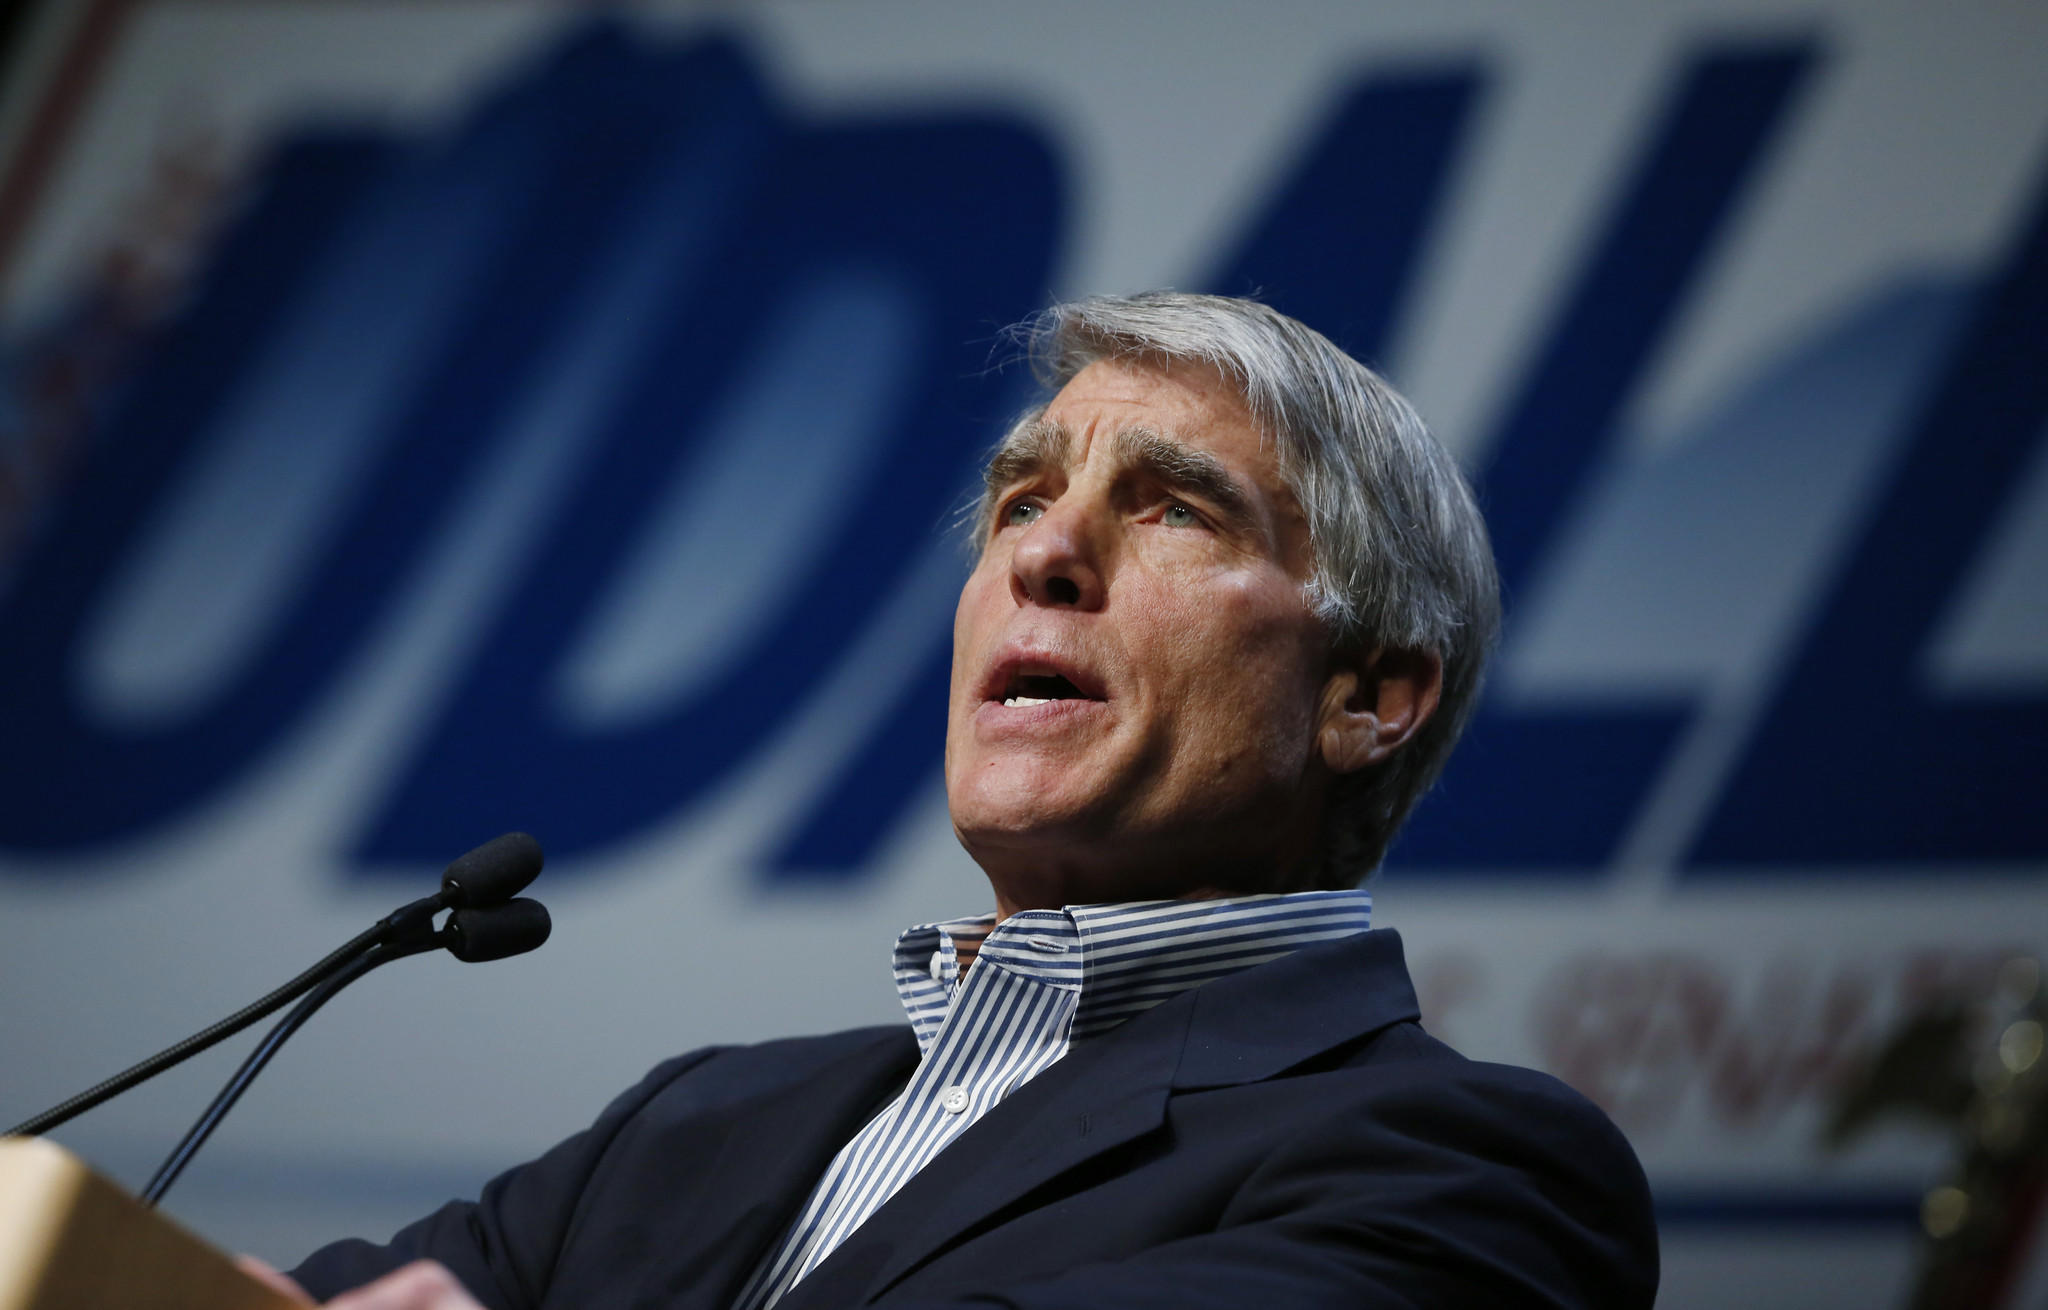 Democratic Colorado Sen. Mark Udall faces a potentially tough reelection fight. A conservative group apologized Wednesday for an advertisement using a grim-faced photo of Udall taken after the July 2012 shootings in Aurora, Colo.